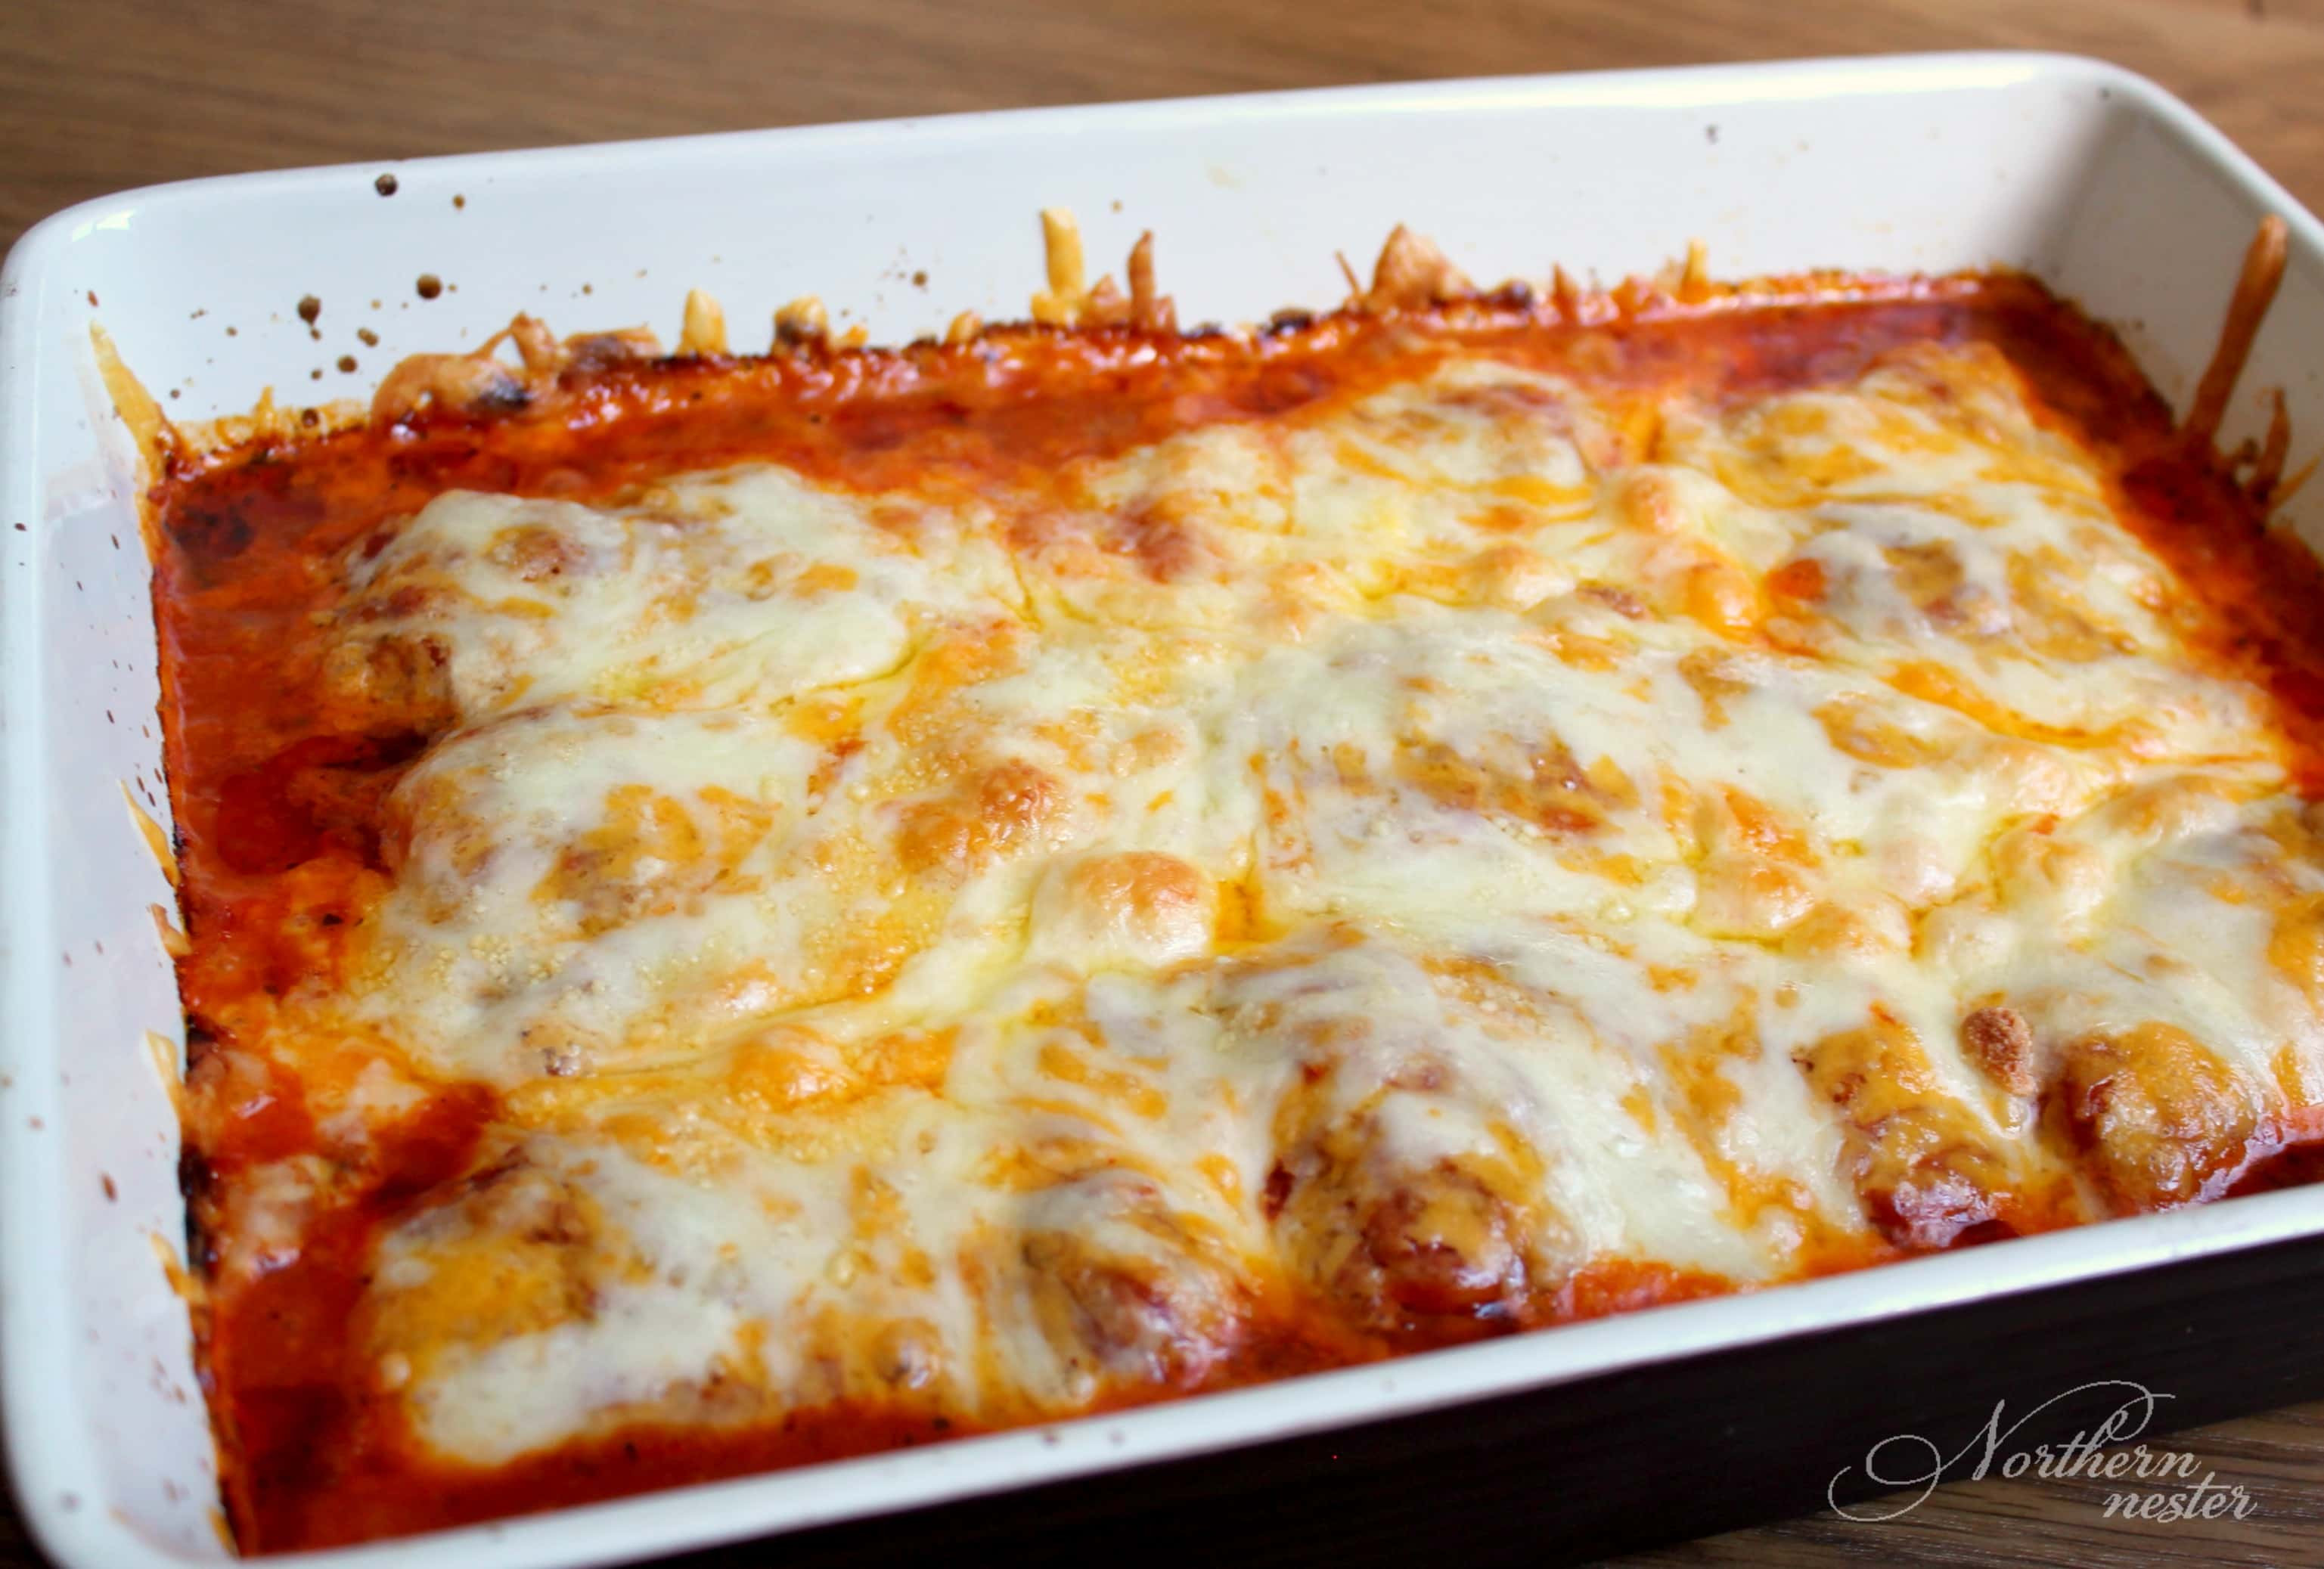 Easy Baked Chicken Parmesan  5 Ingre nt Chicken Parmesan Northern Nester